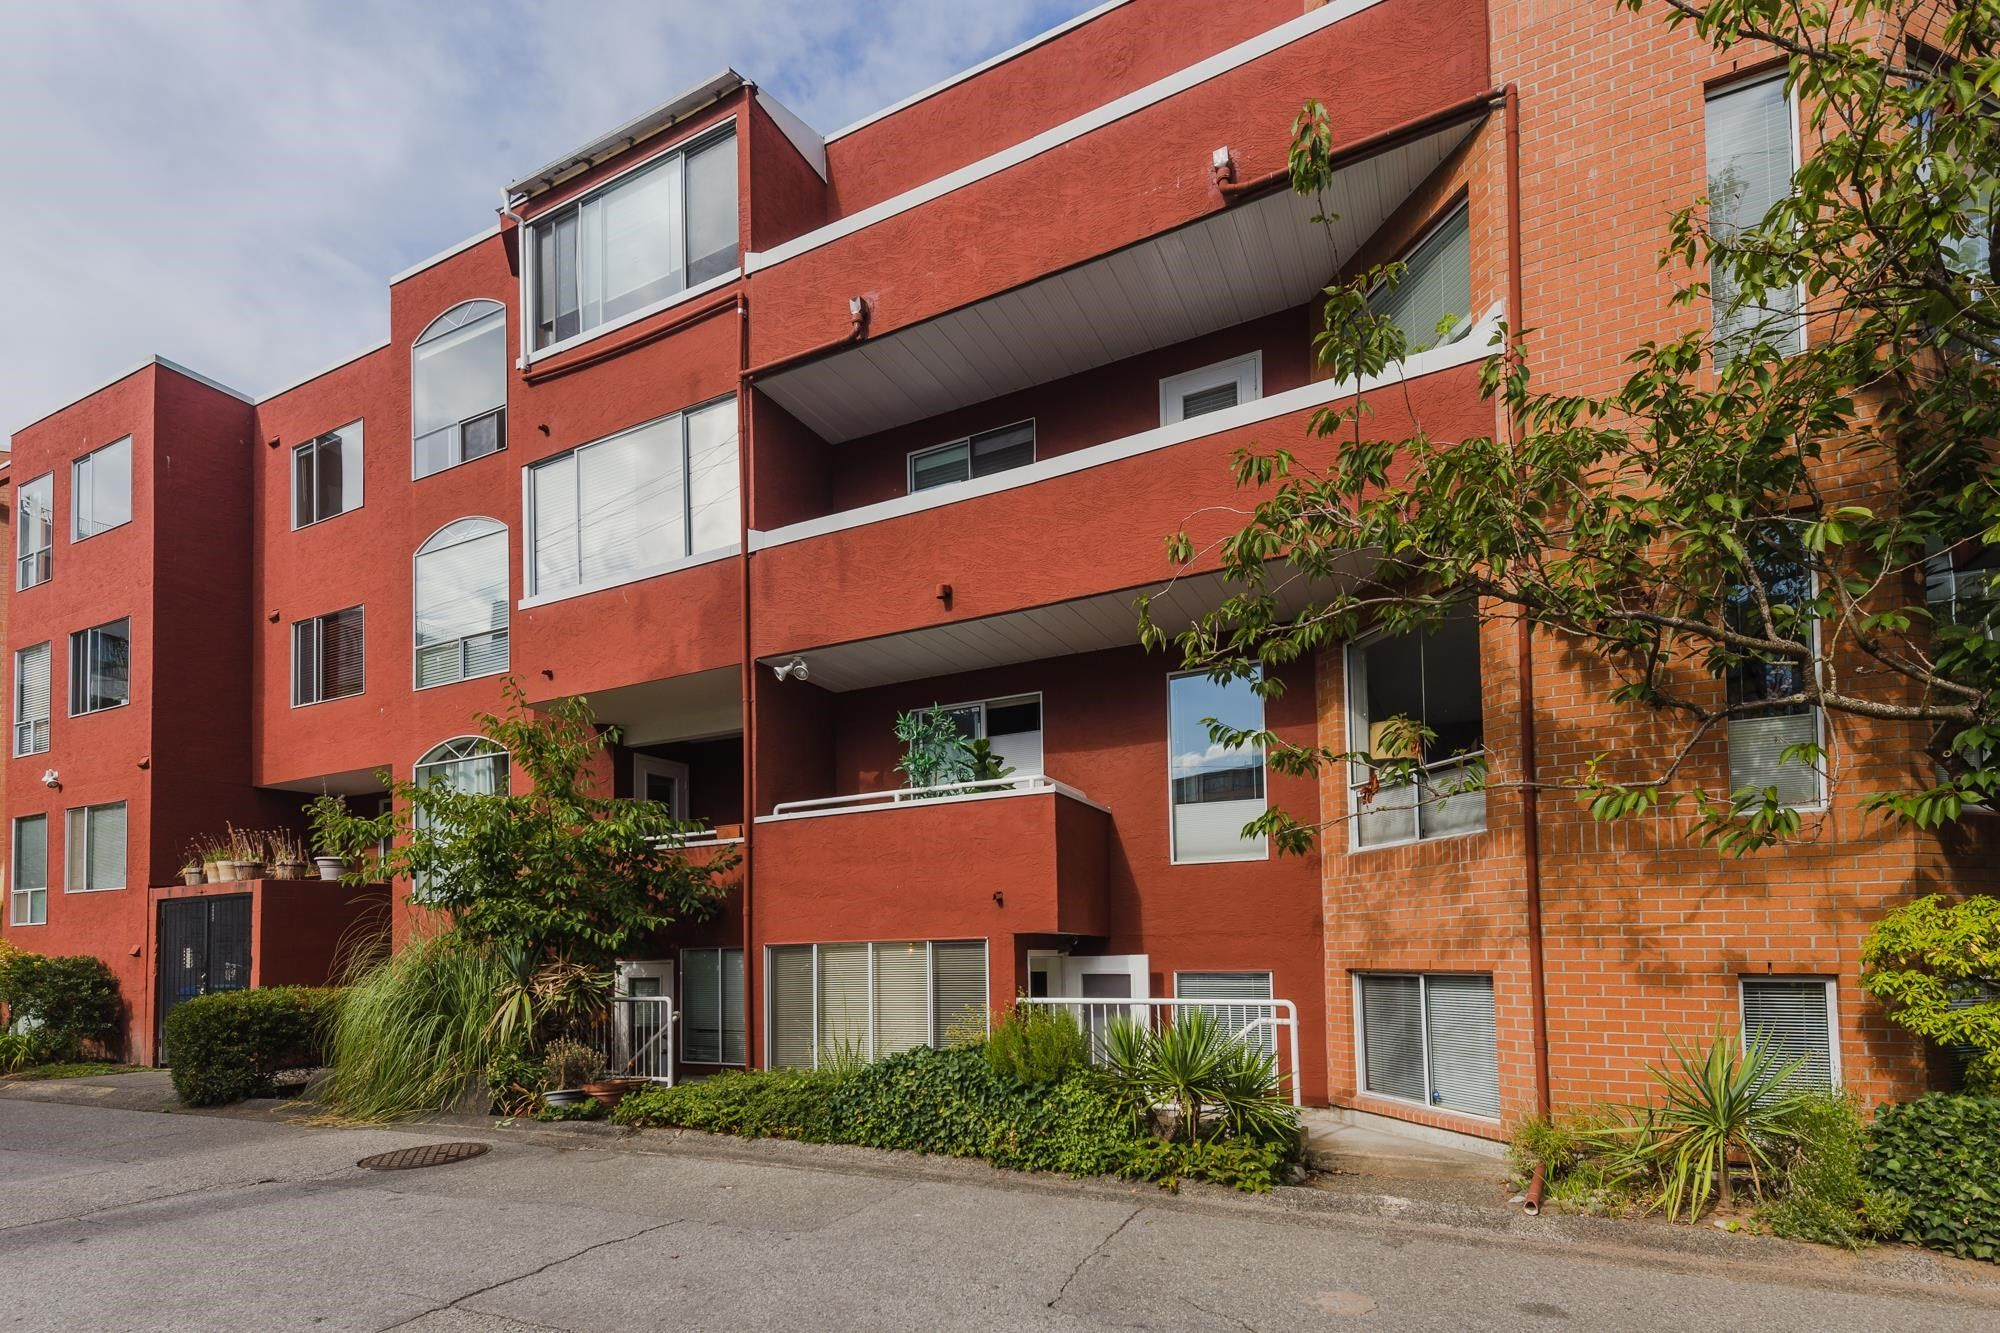 """Main Photo: 107 1010 CHILCO Street in Vancouver: West End VW Condo for sale in """"Chilco Park"""" (Vancouver West)  : MLS®# R2614258"""